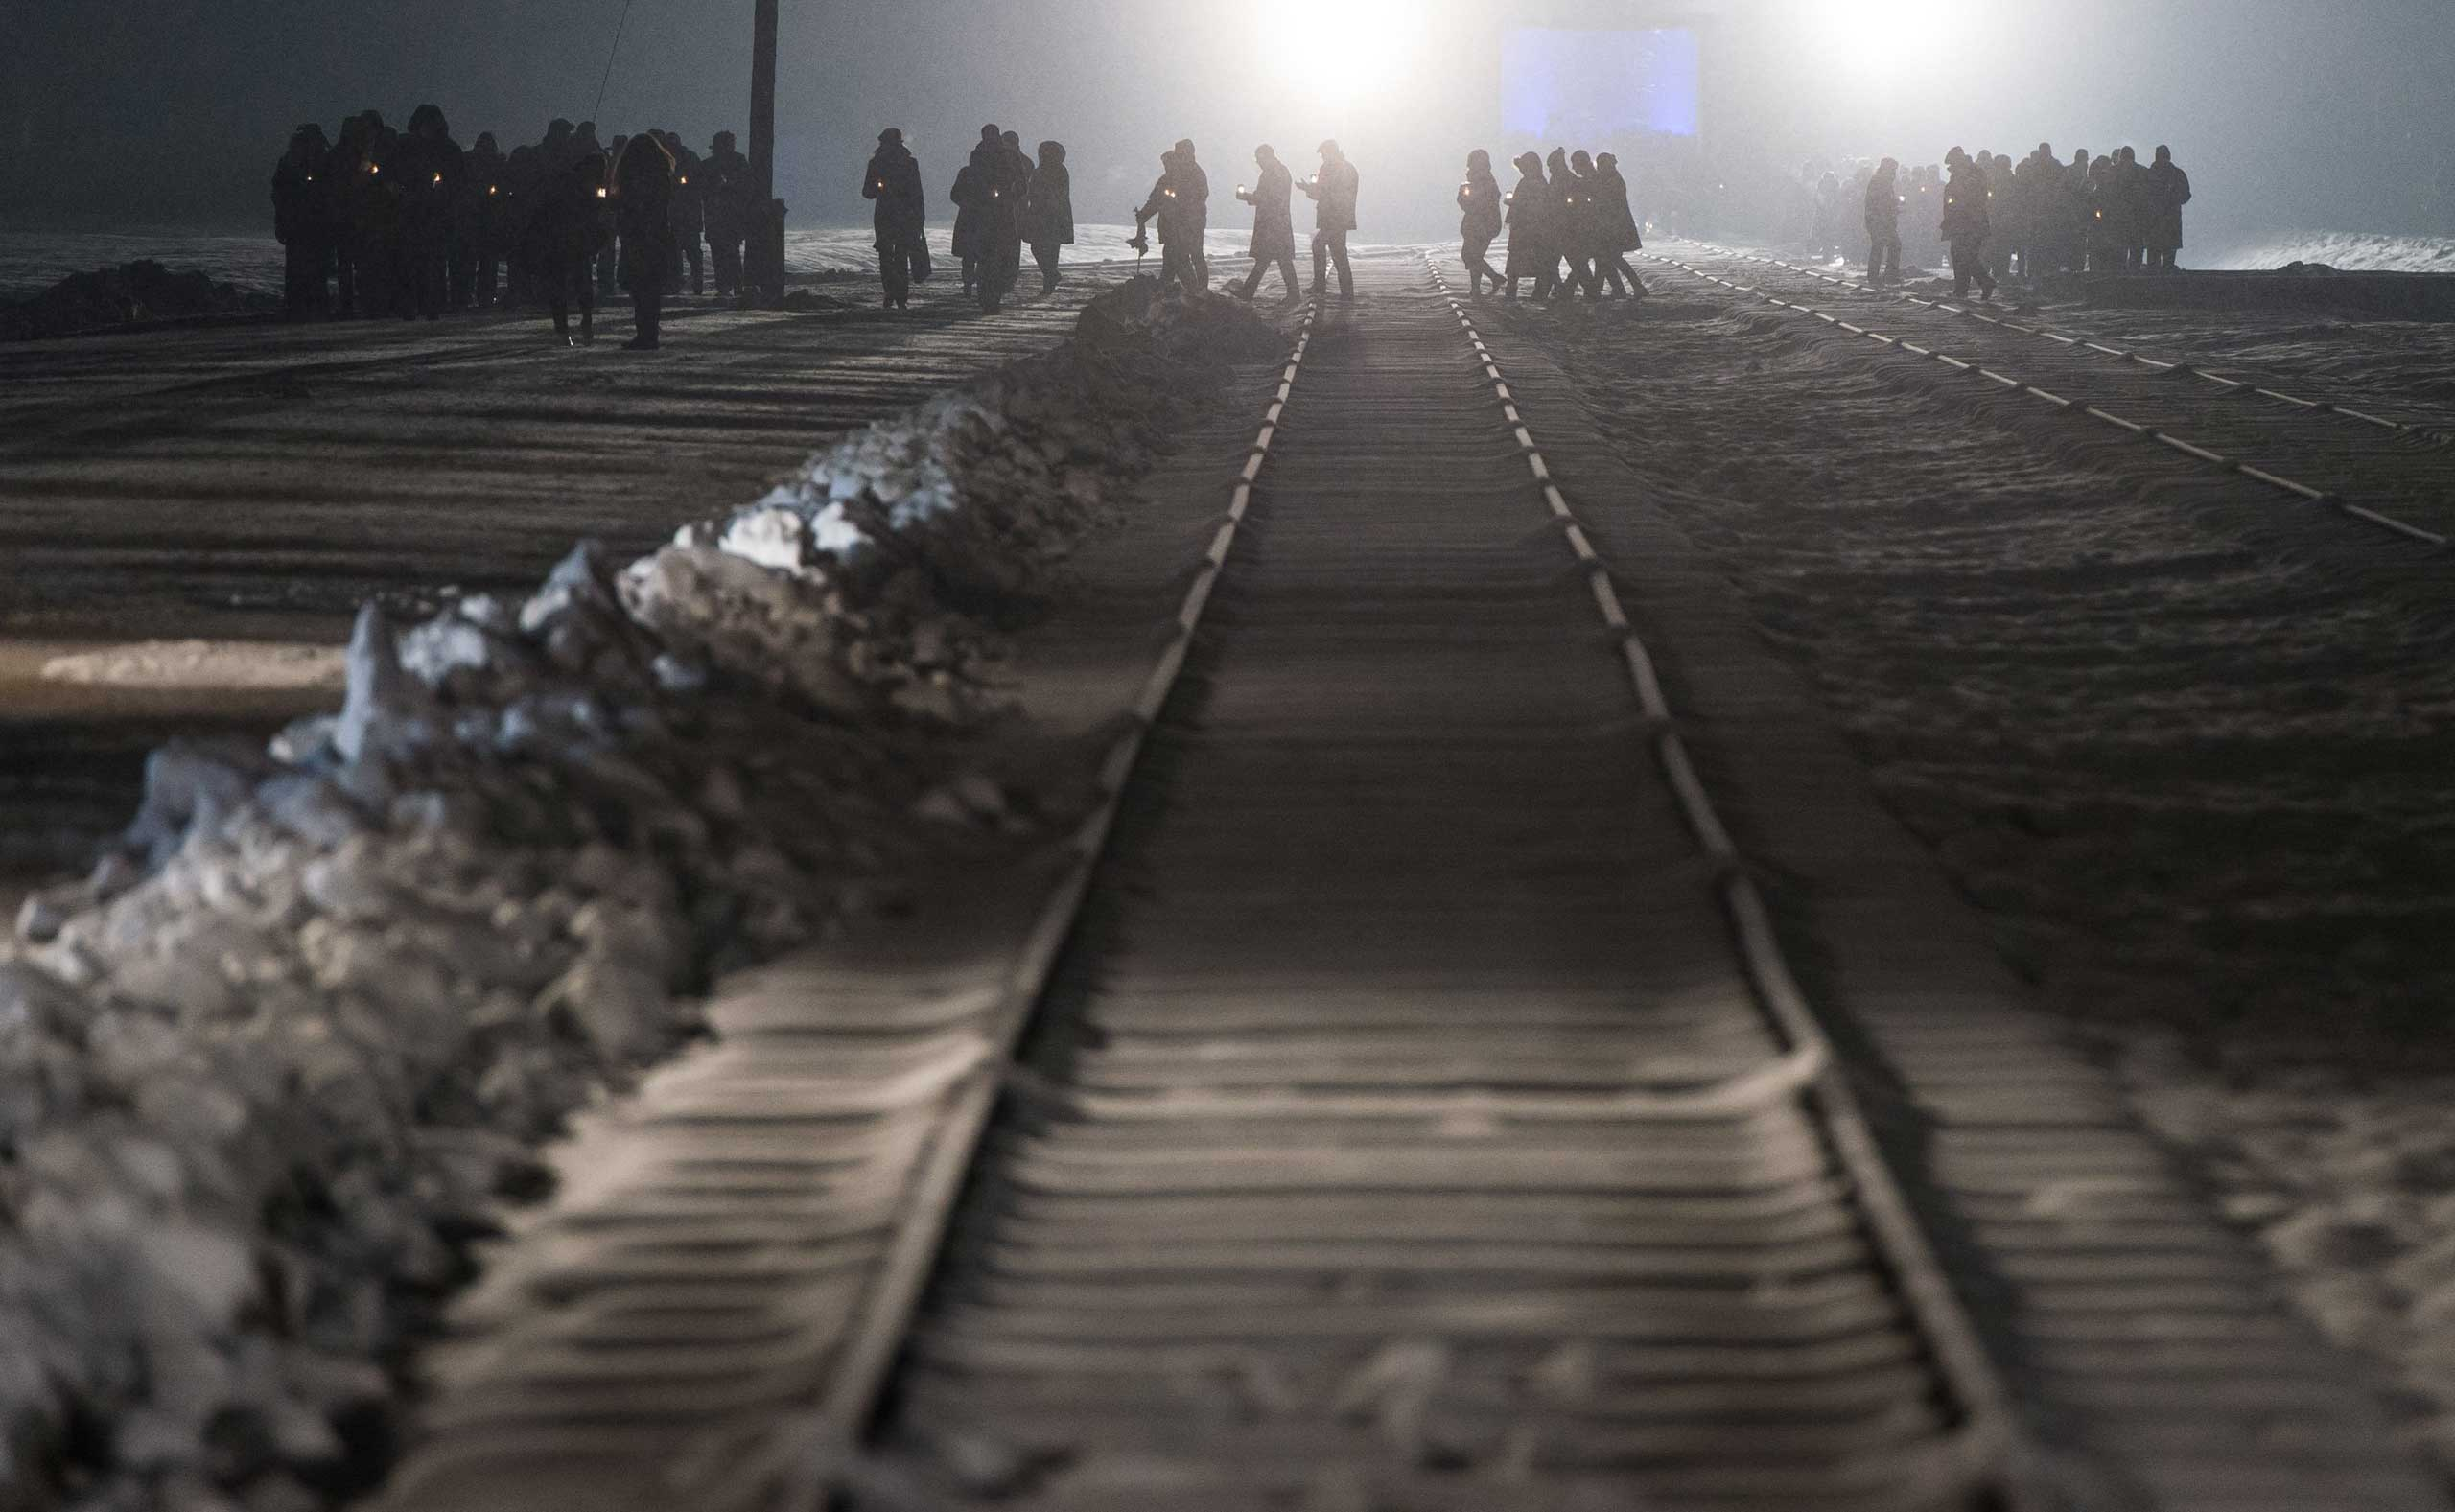 Auschwitz survivors and families visit the Birkenau Memorial carrying candles on Jan. 27, 2015 in Oswiecim, Poland.